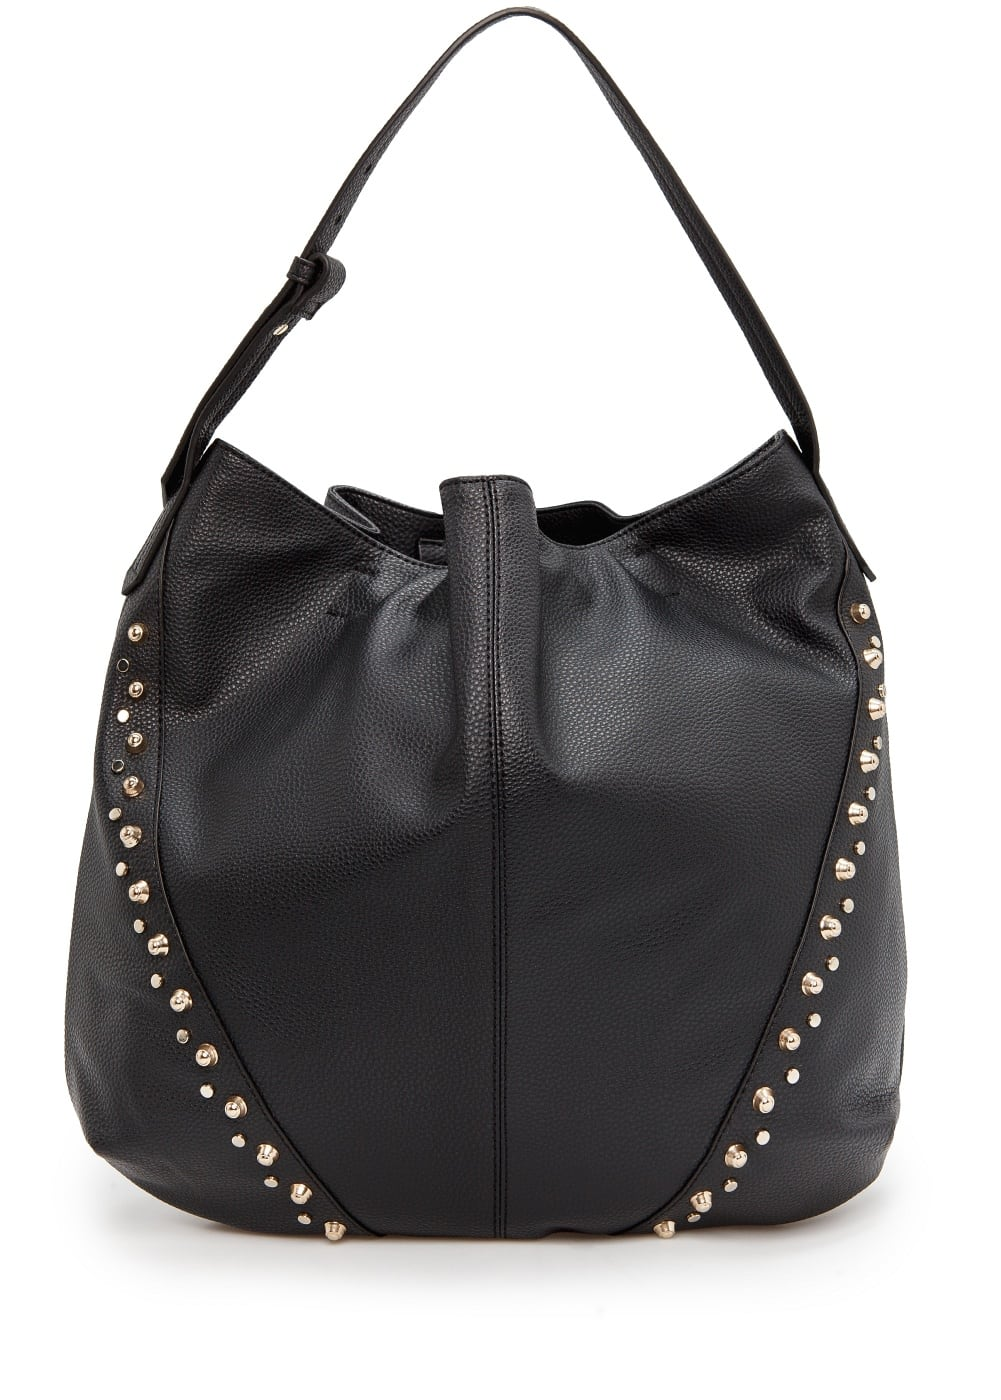 Stud hobo bag